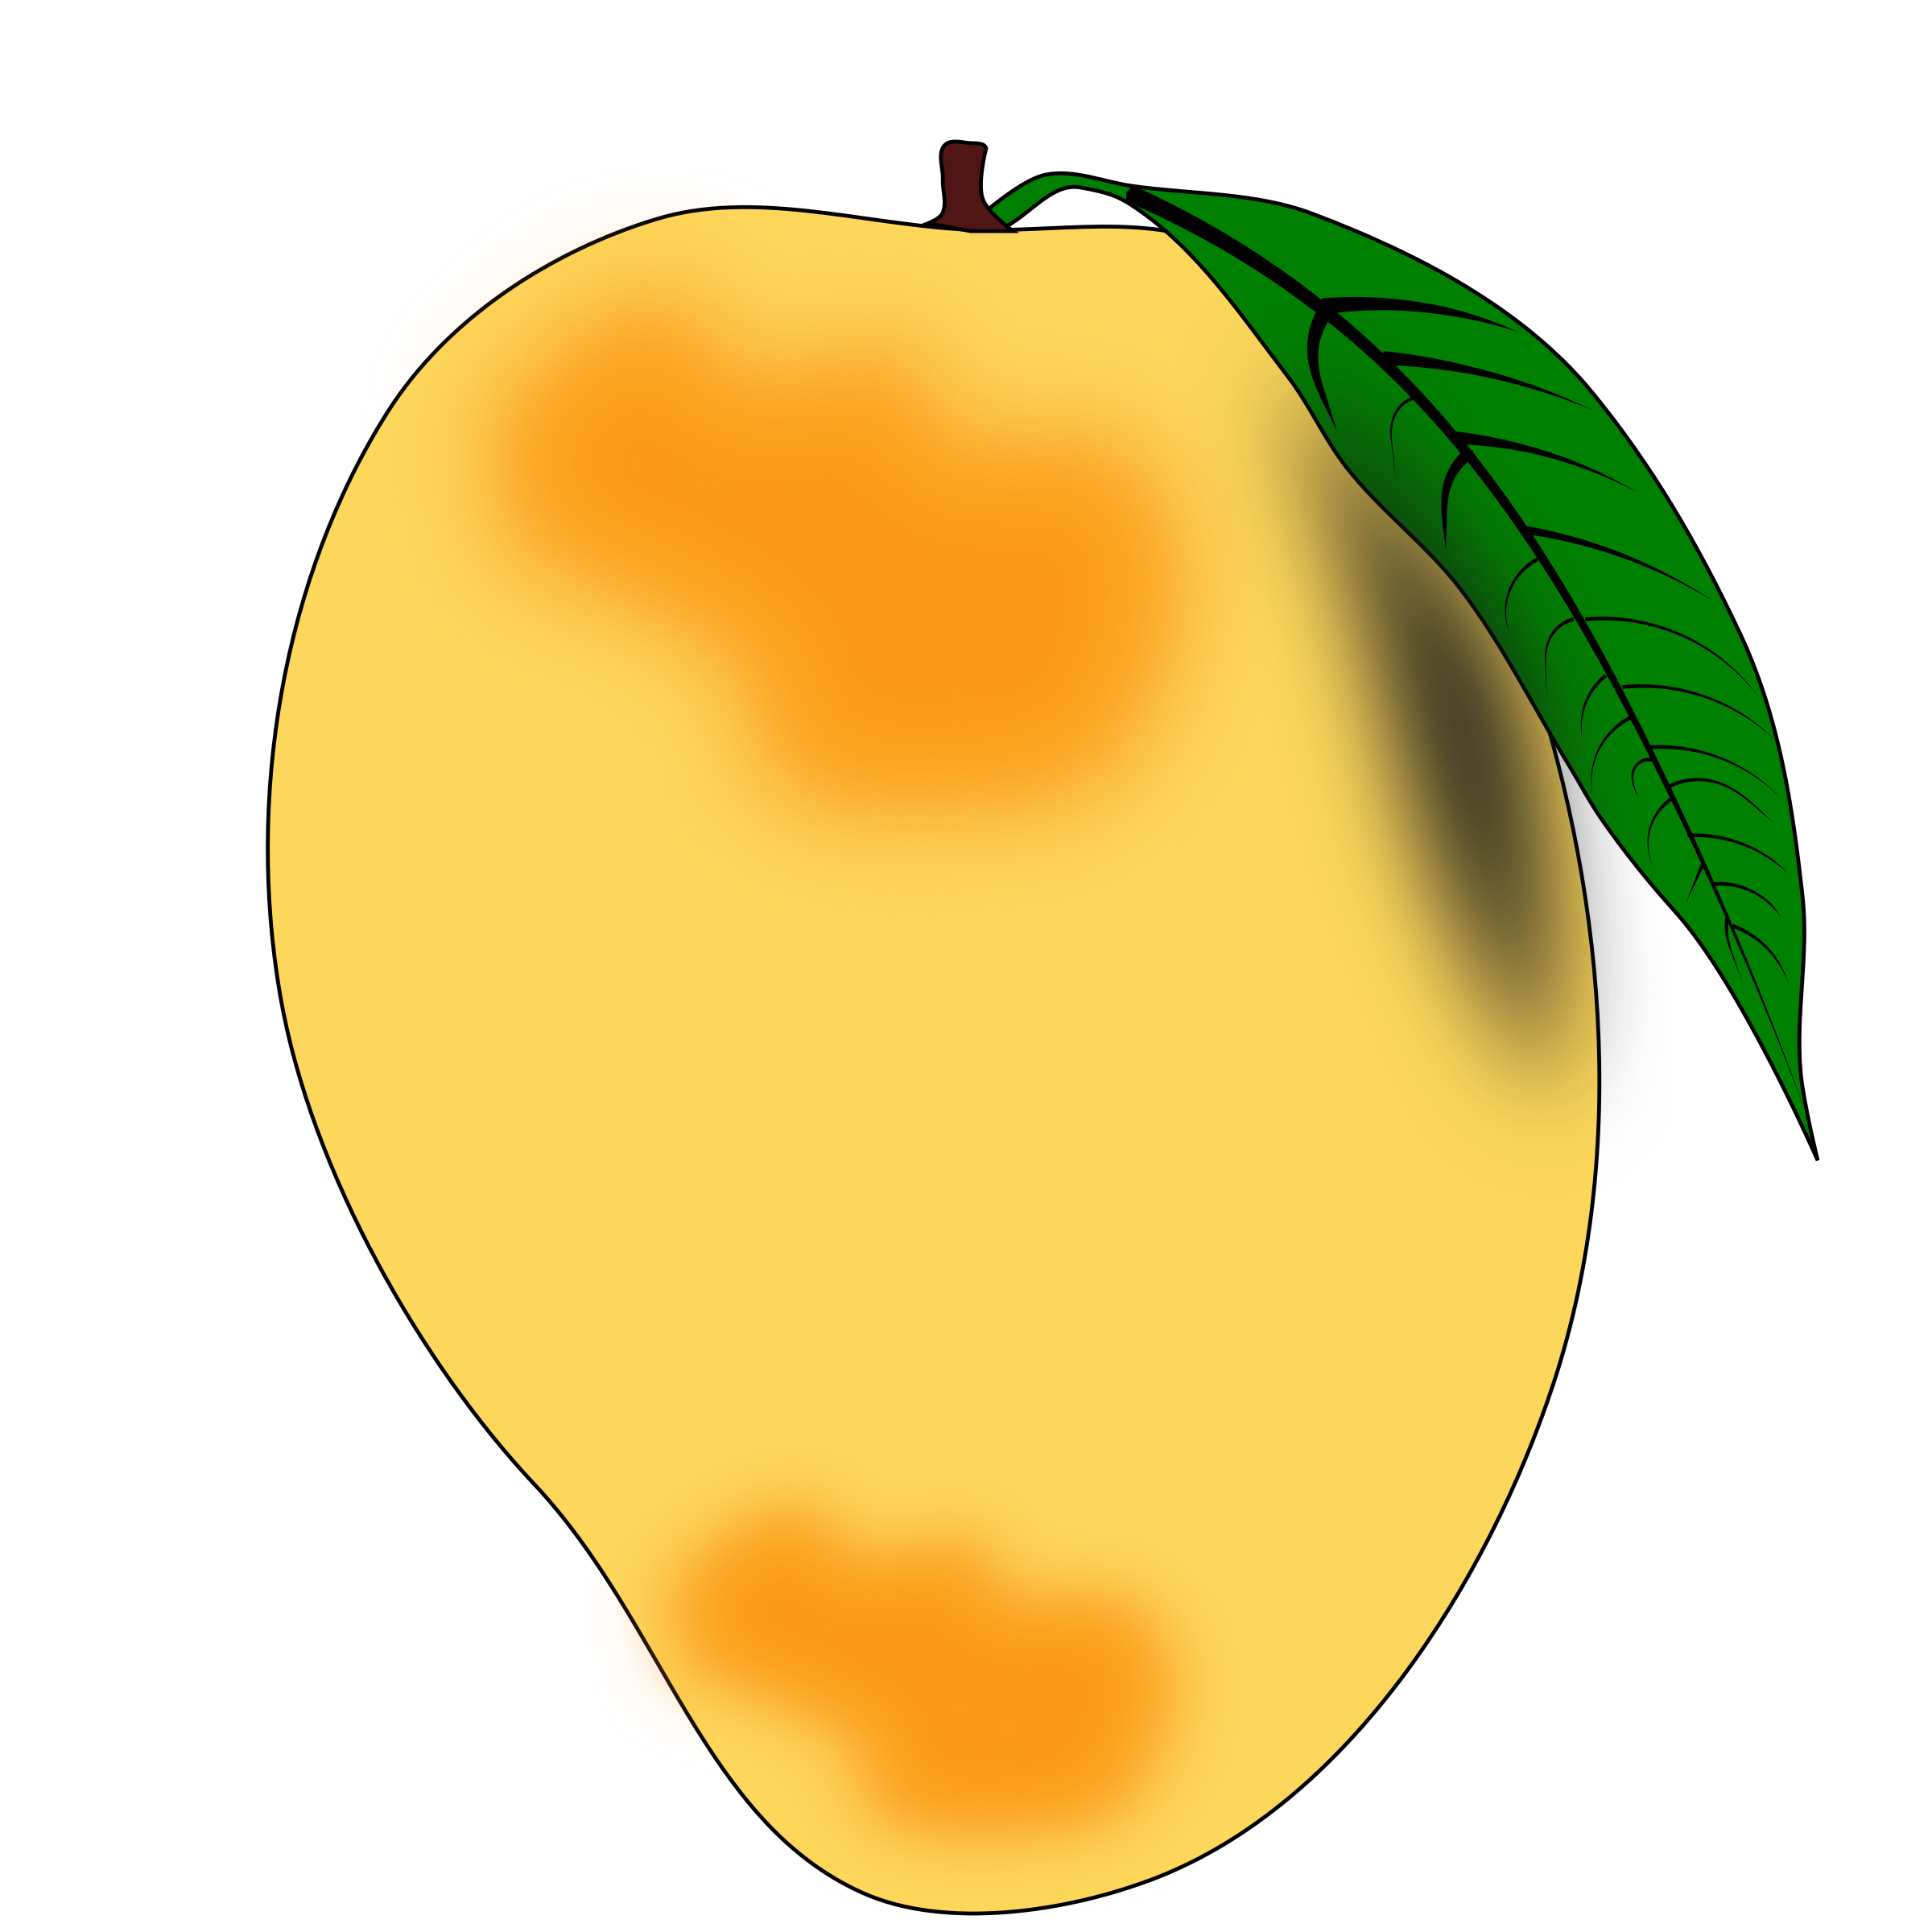 Ripe mango. White mangoes free download